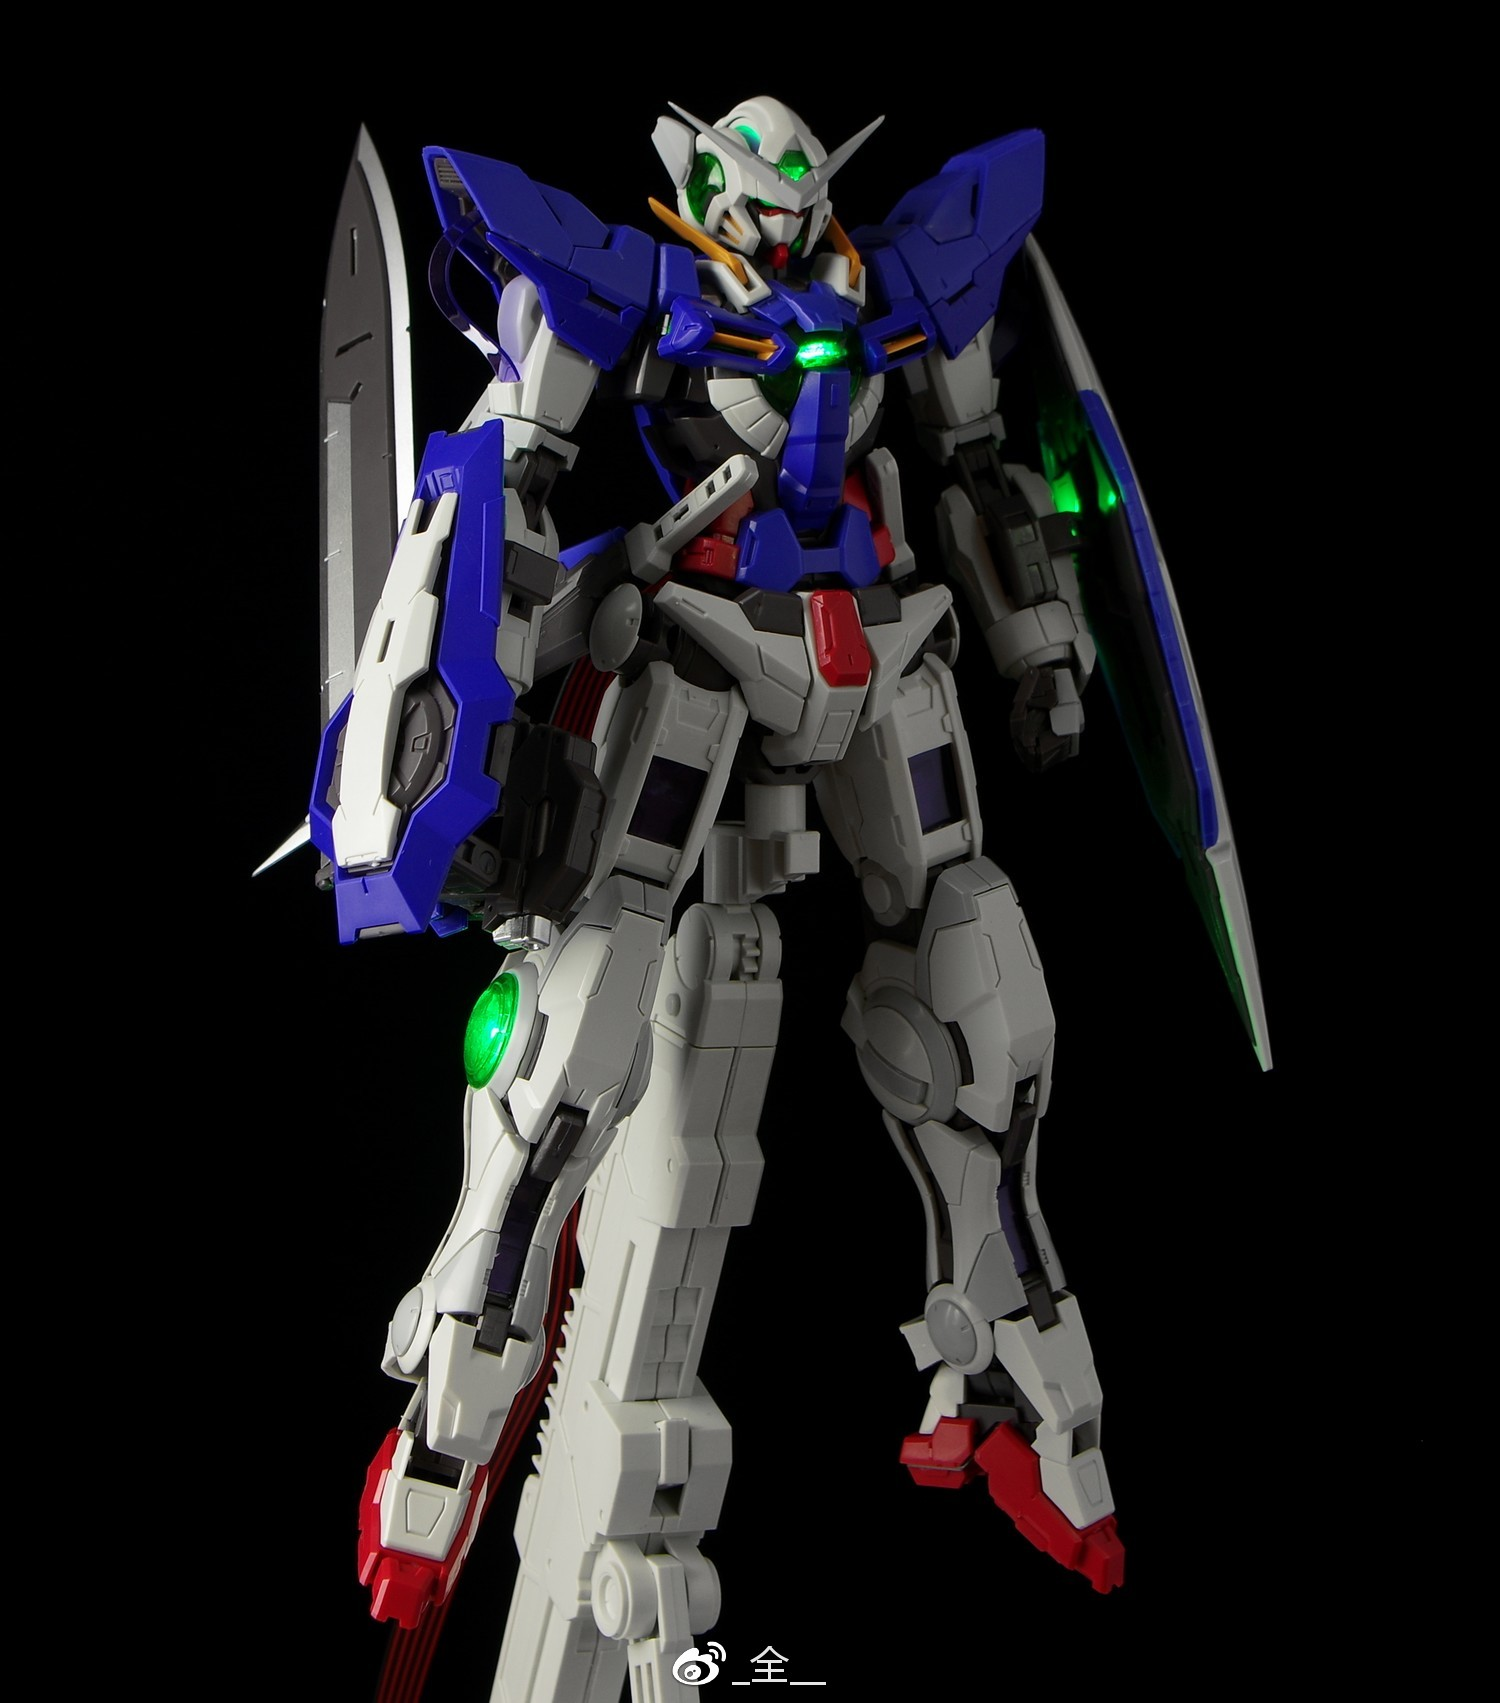 S269_mg_exia_led_hobby_star_inask_060.jpg